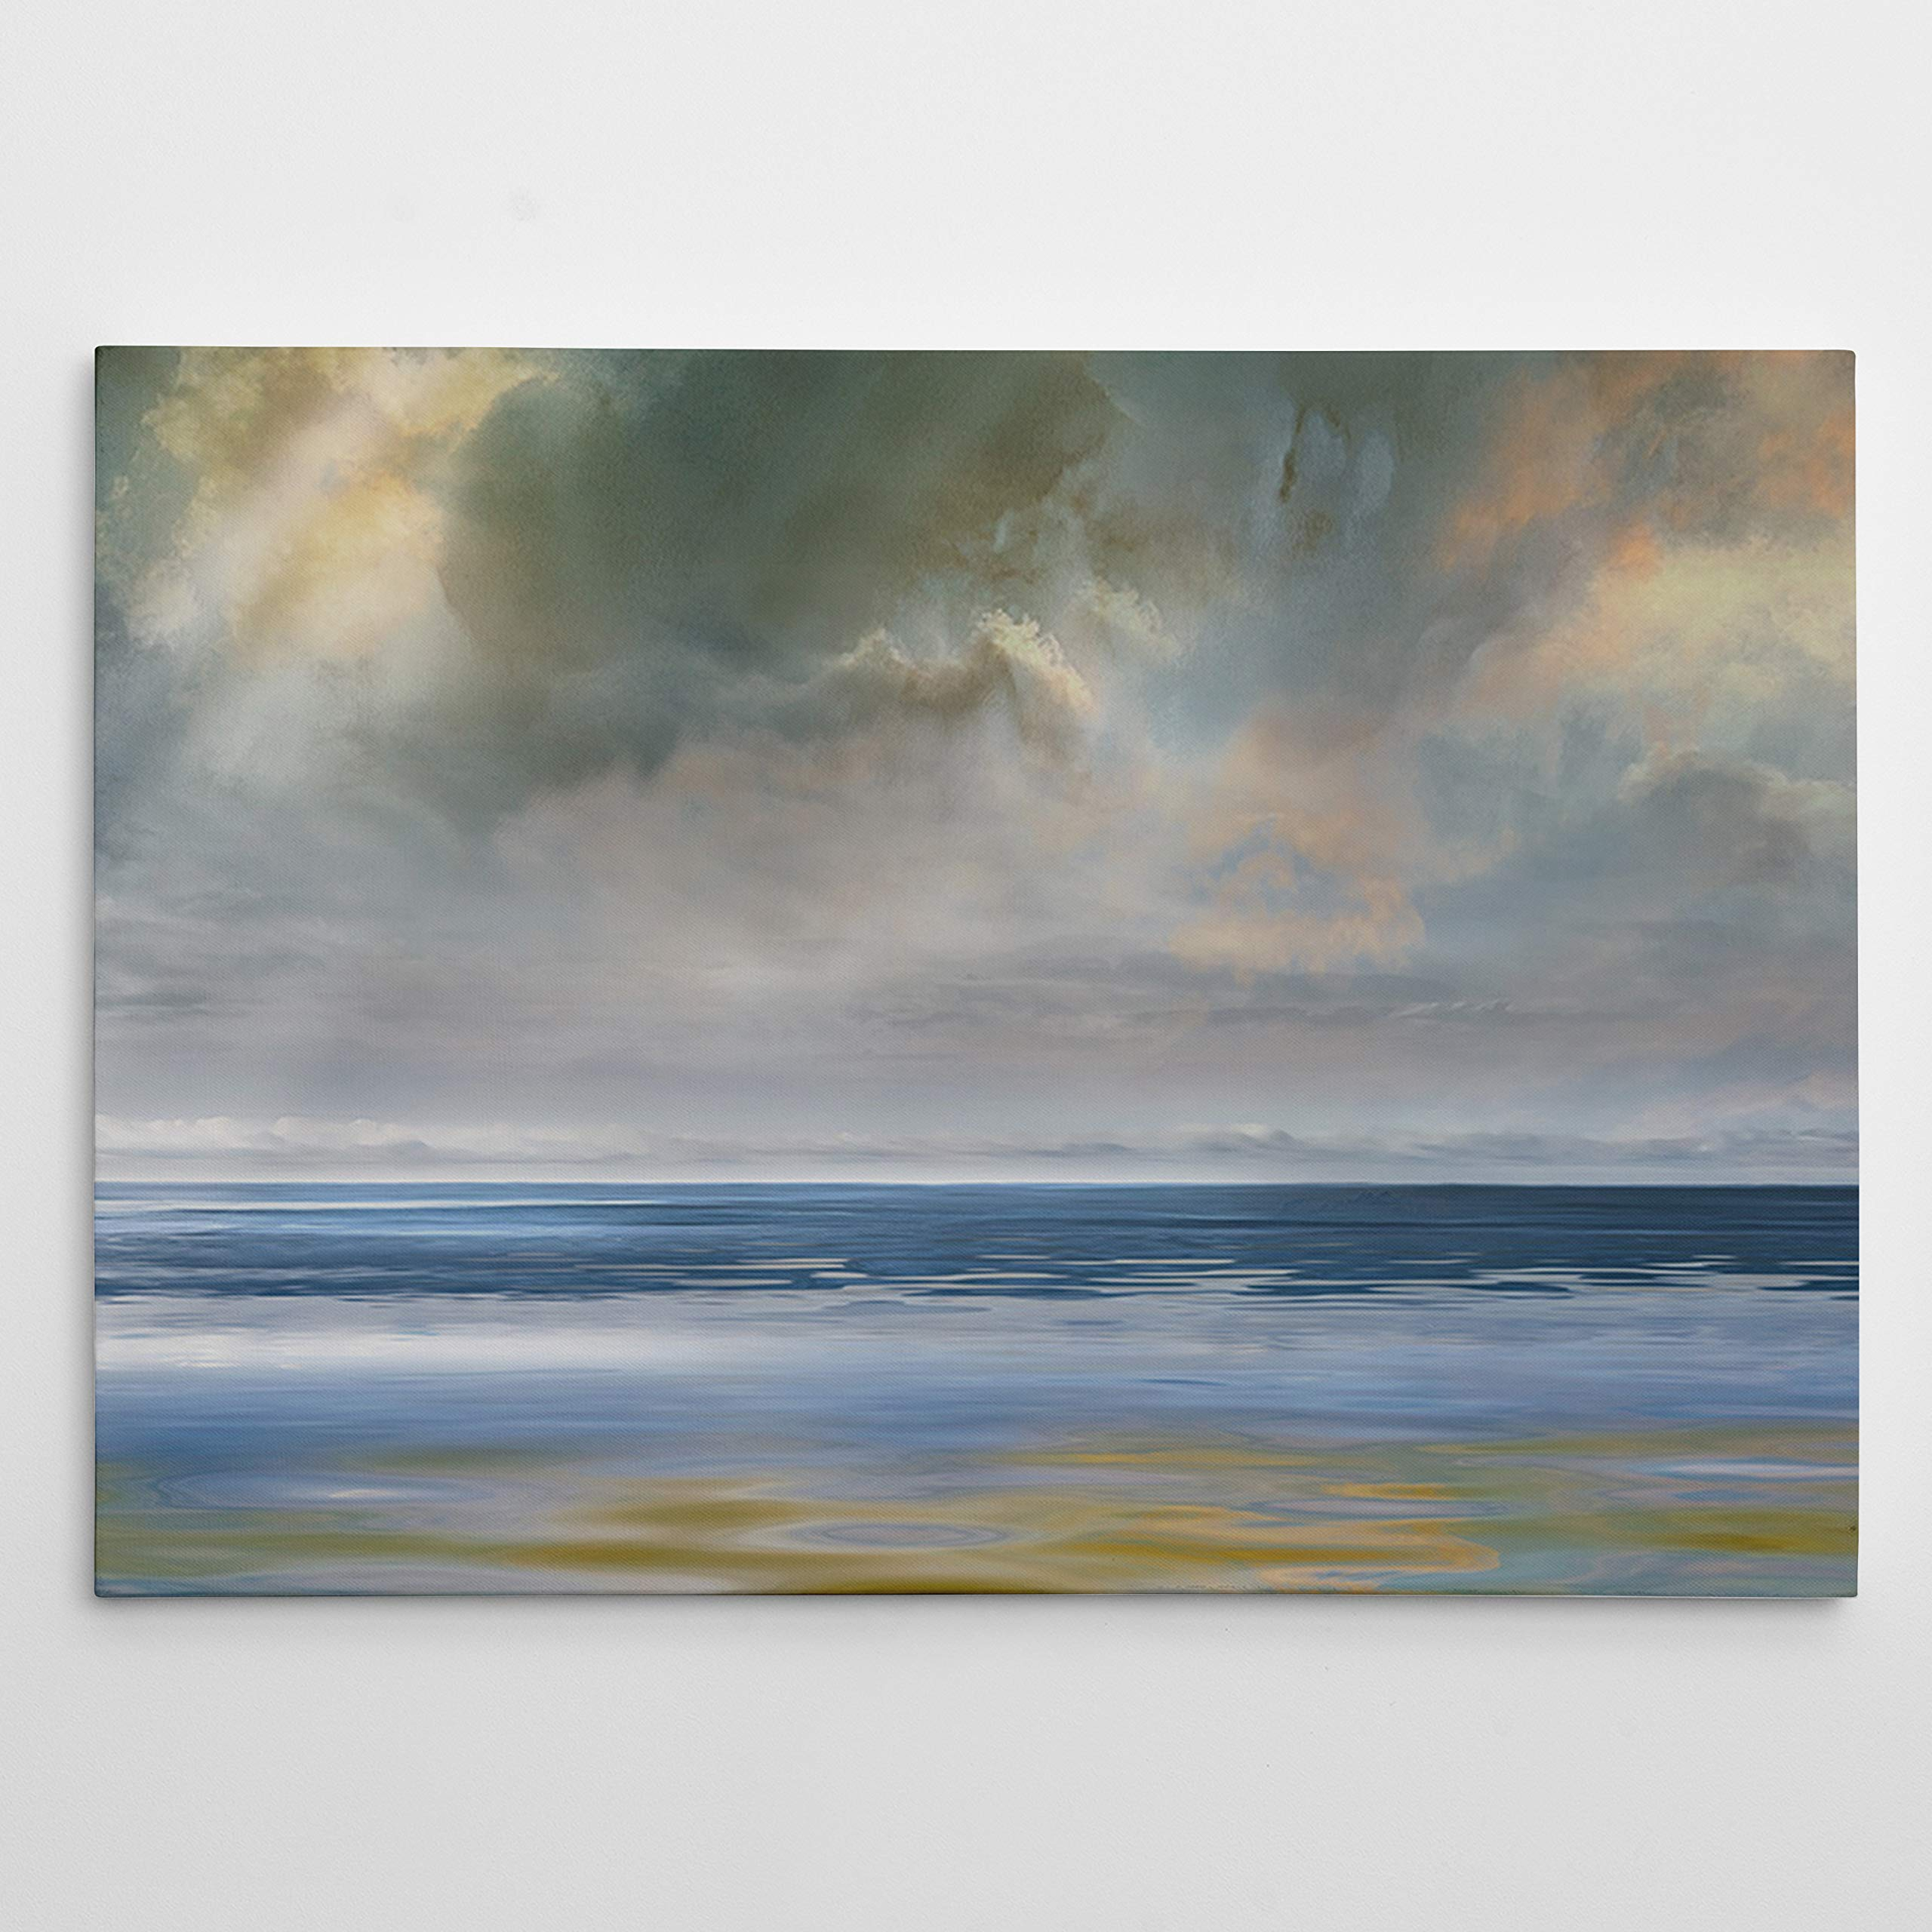 WEXFORD HOME Reflection of Light Gallery Wrapped Canvas Wall Art, 18x27